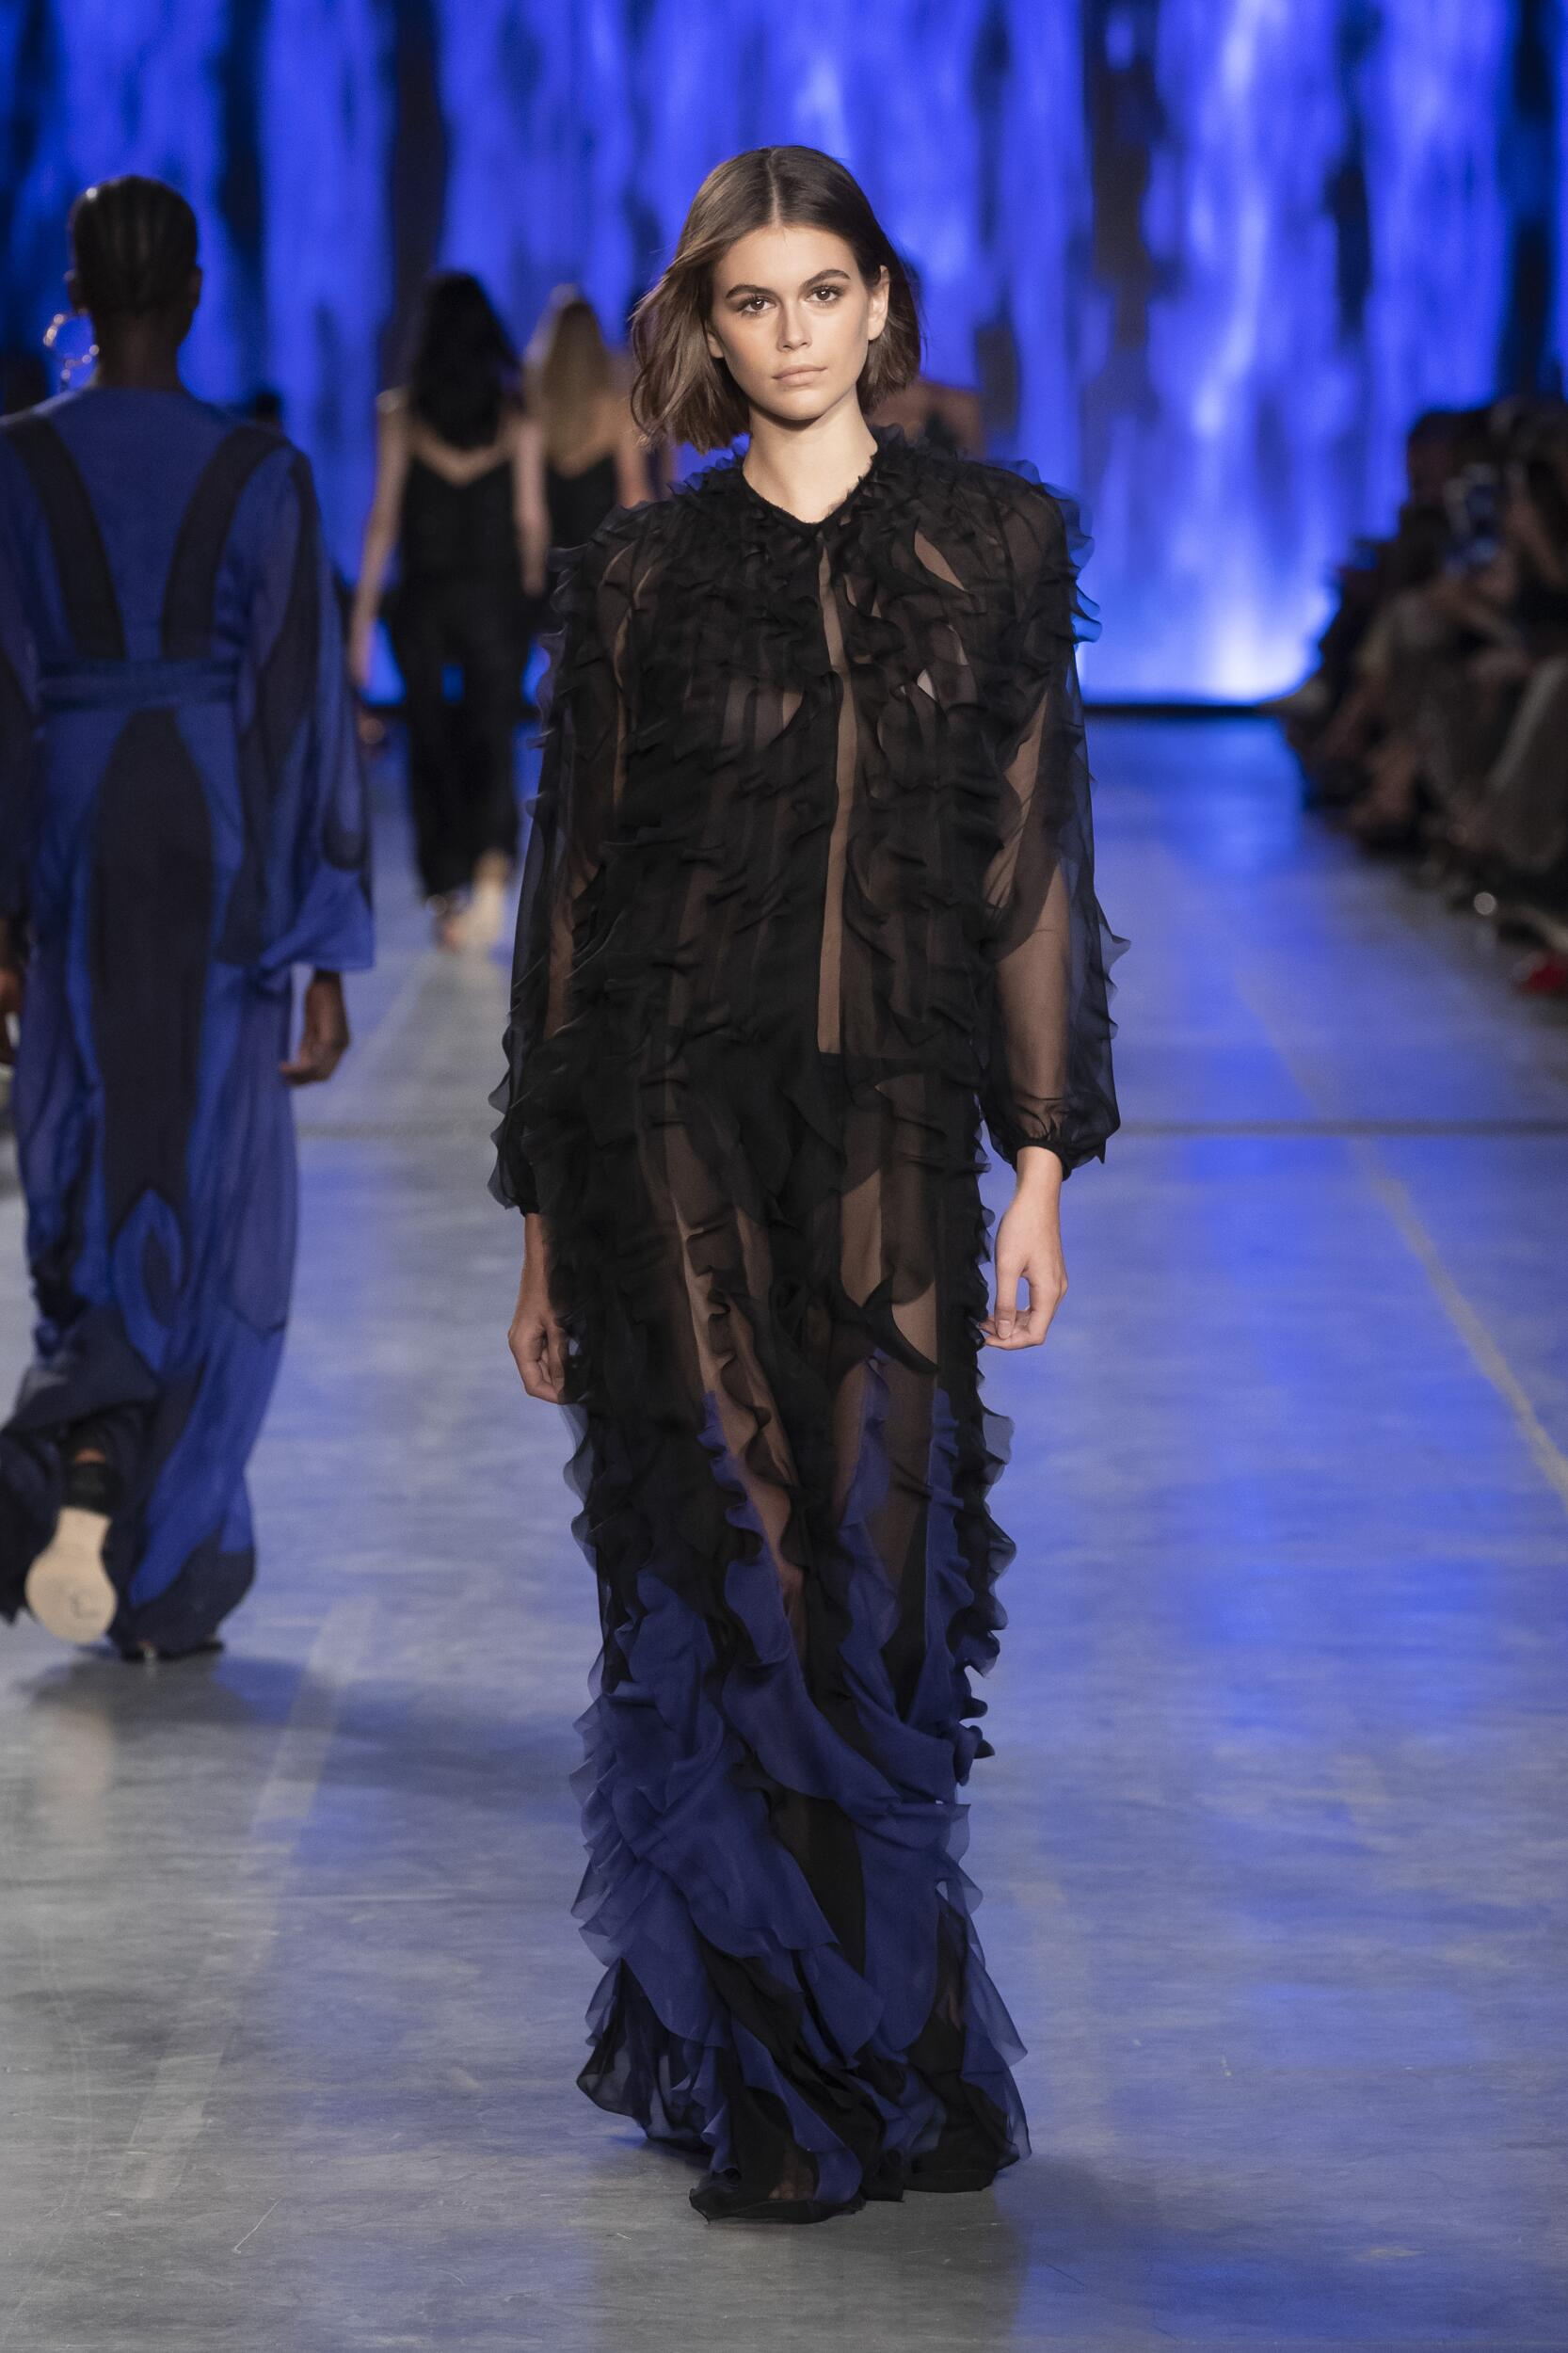 Spring Summer Fashion Trends 2020 Alberta Ferretti